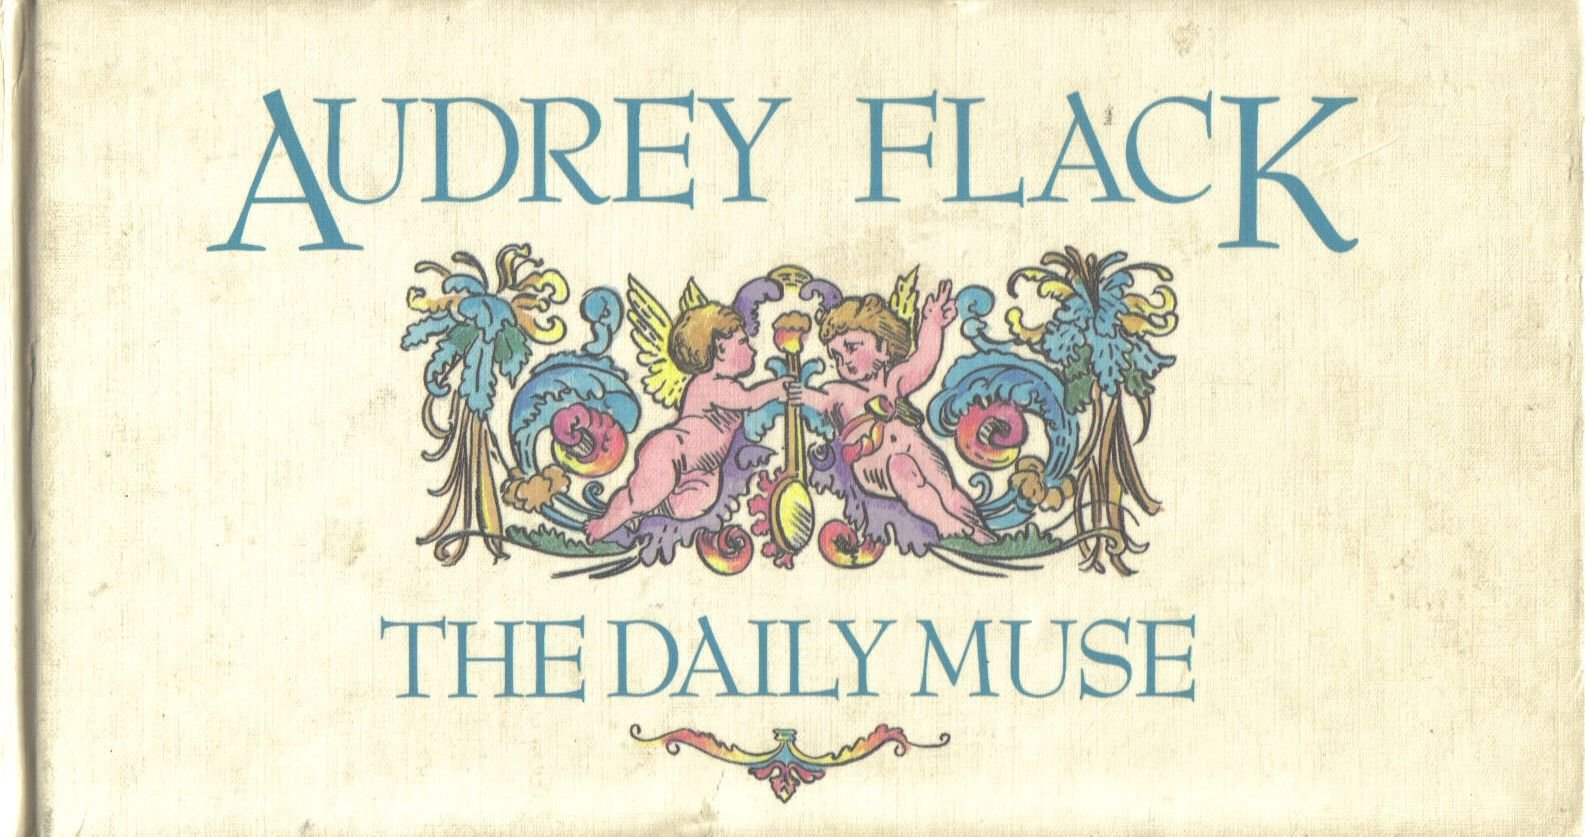 The Daily Muse, hardcover published in 1989